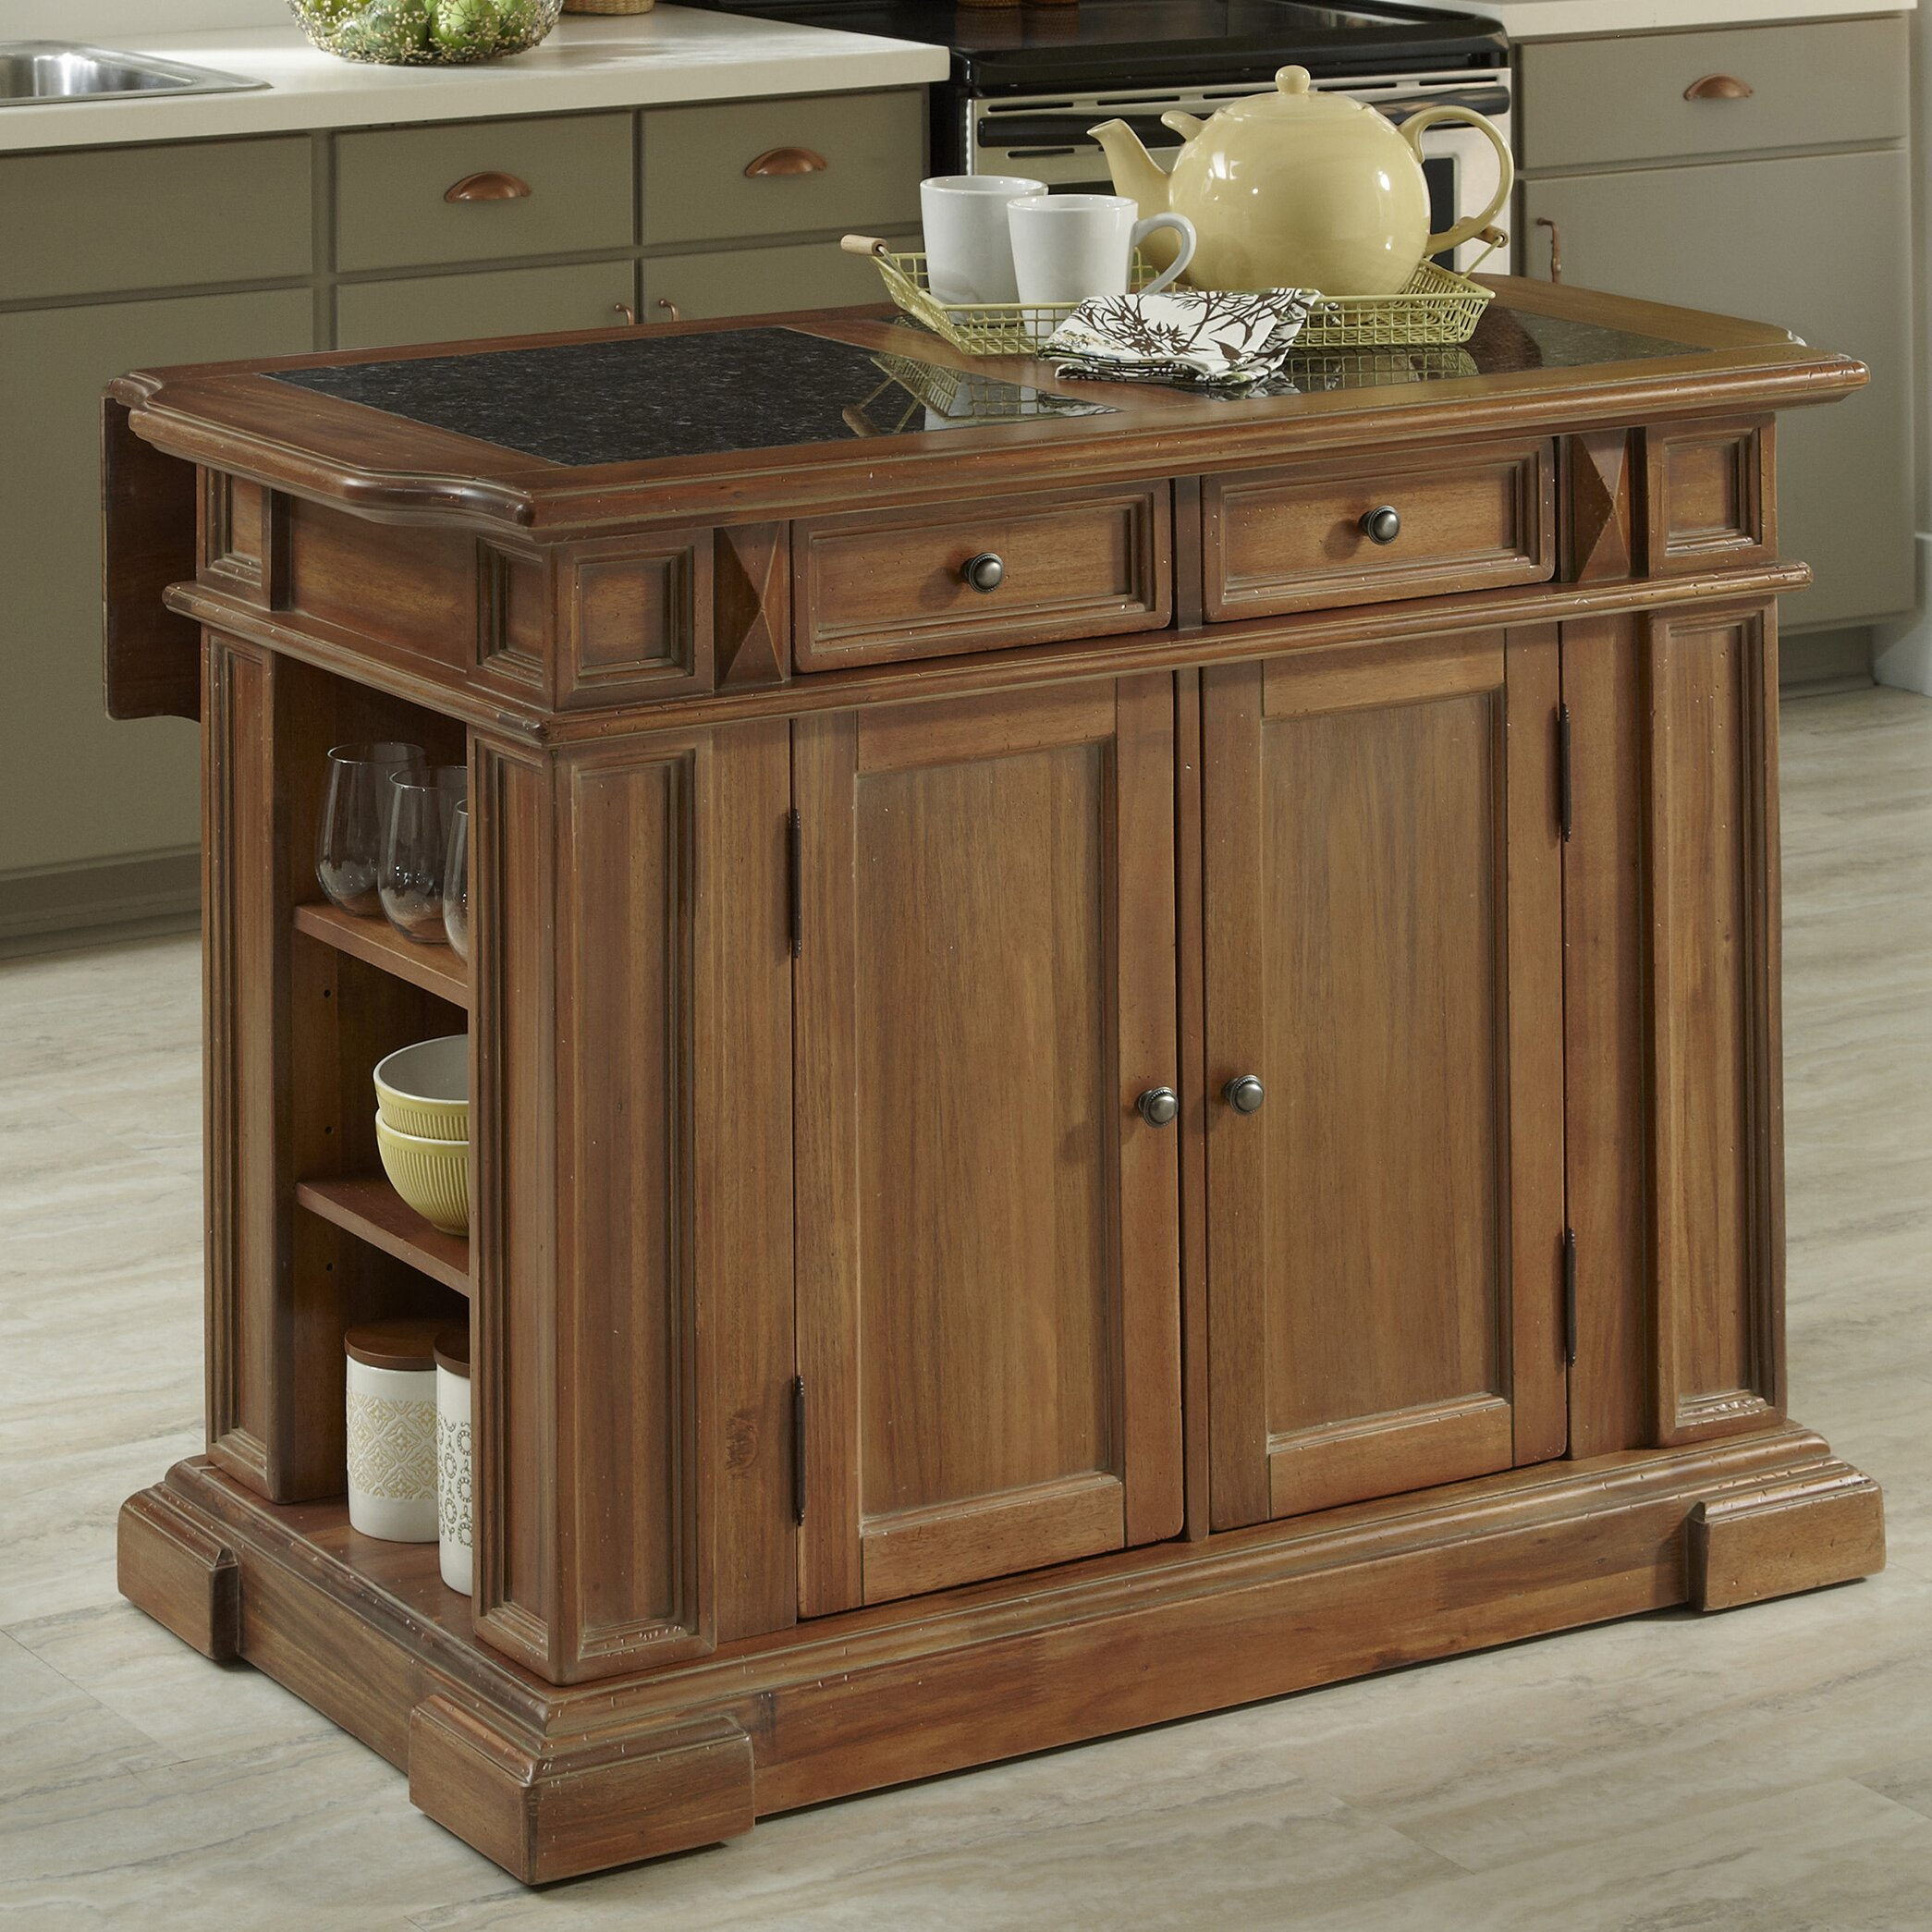 Kitchen Island With Granite Top: Home Styles Americana Kitchen Island With Granite Top